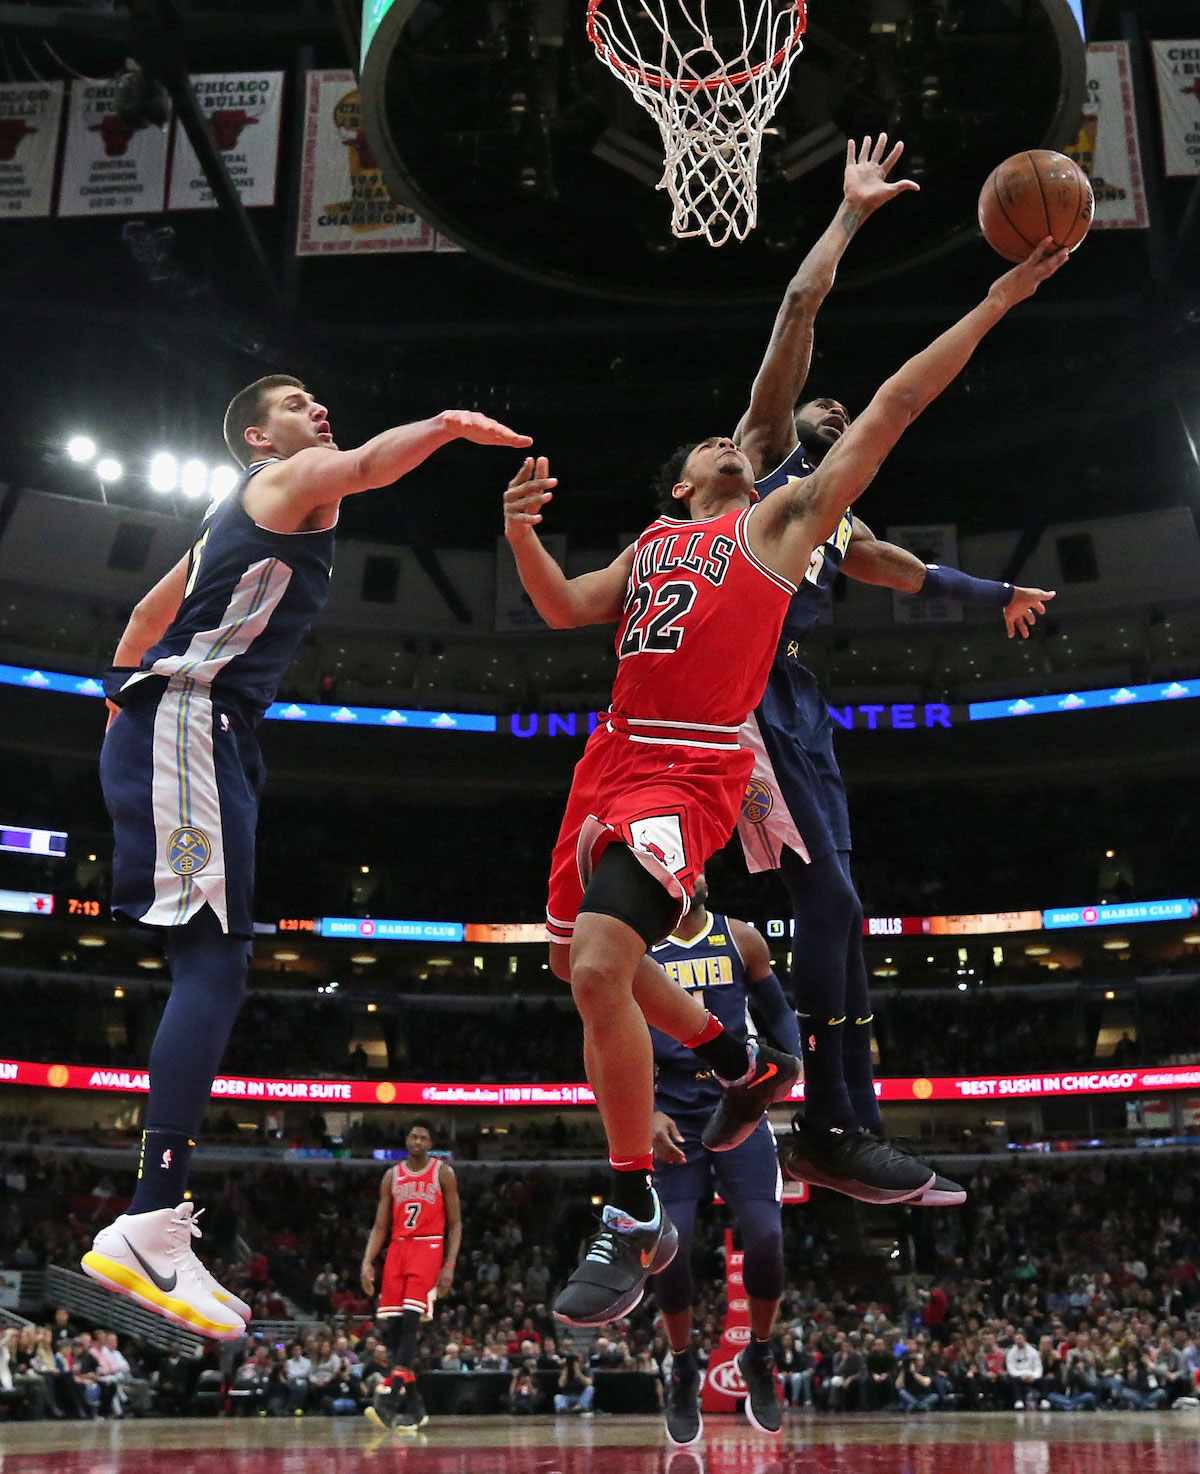 Cameron Payne #22 of the Chicago Bulls goes up for a shot between Nikola Jokic #15 (L) and Will Barton #5 of the Denver Nuggets at the United Center on March 21, 2018 in Chicago, Illinois.